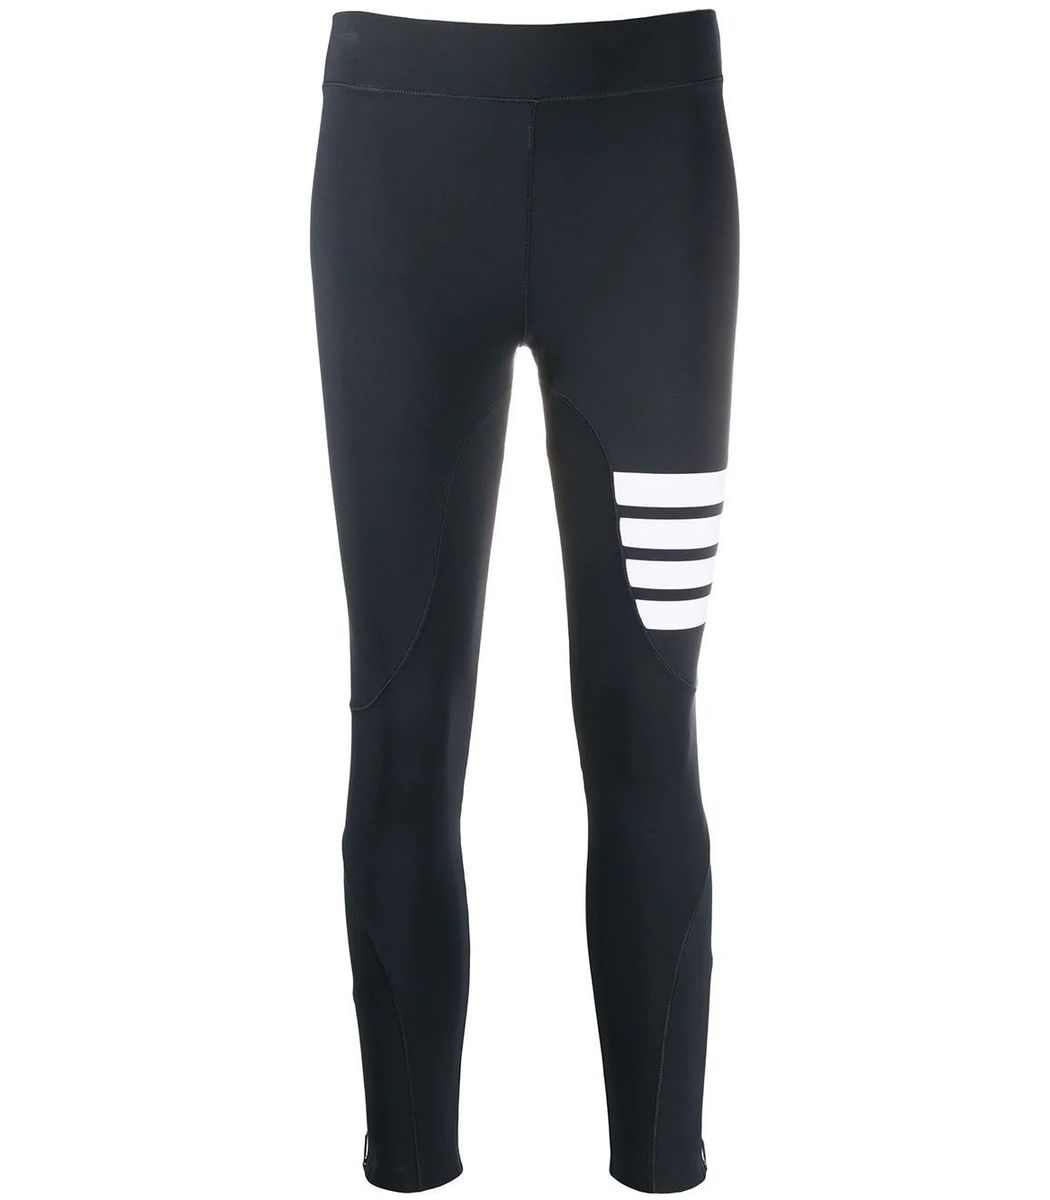 Thom Browne Charcoal Compression Tights